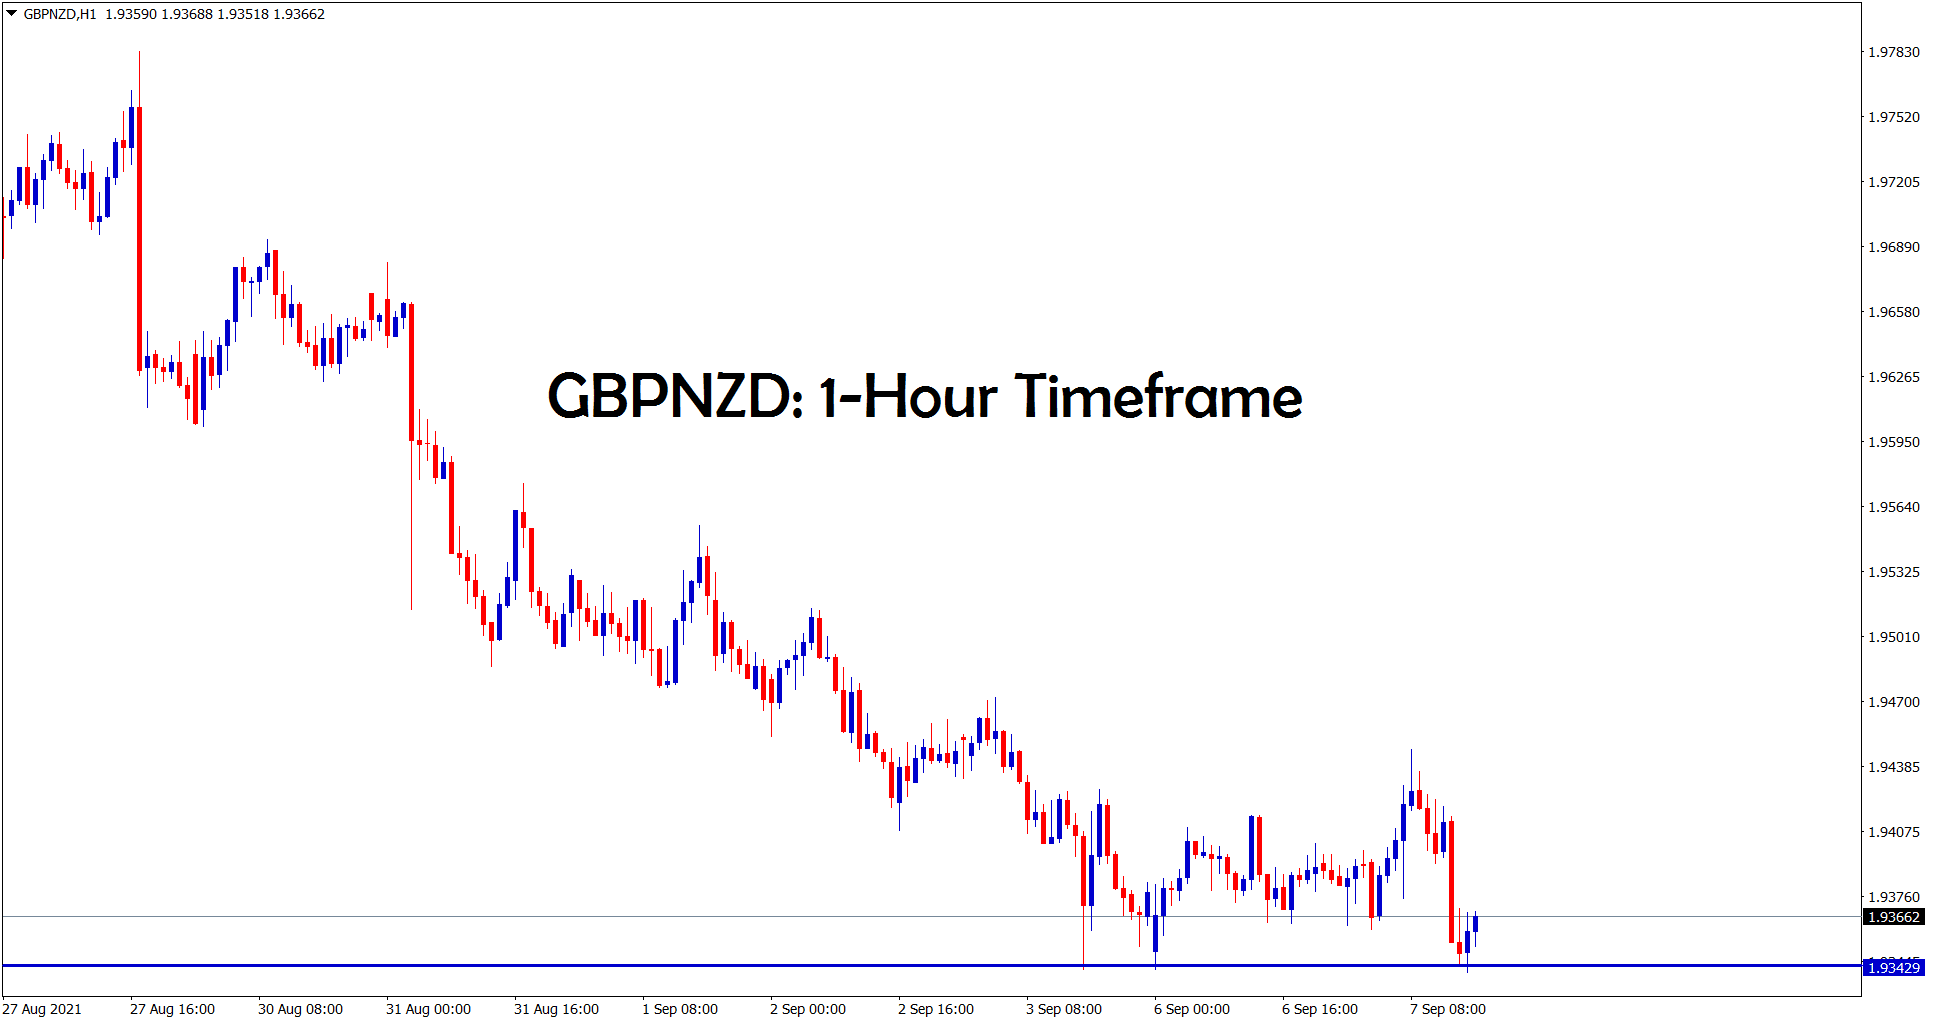 In the 1 hour timeframe GBPNZD is bouncing back from the support area